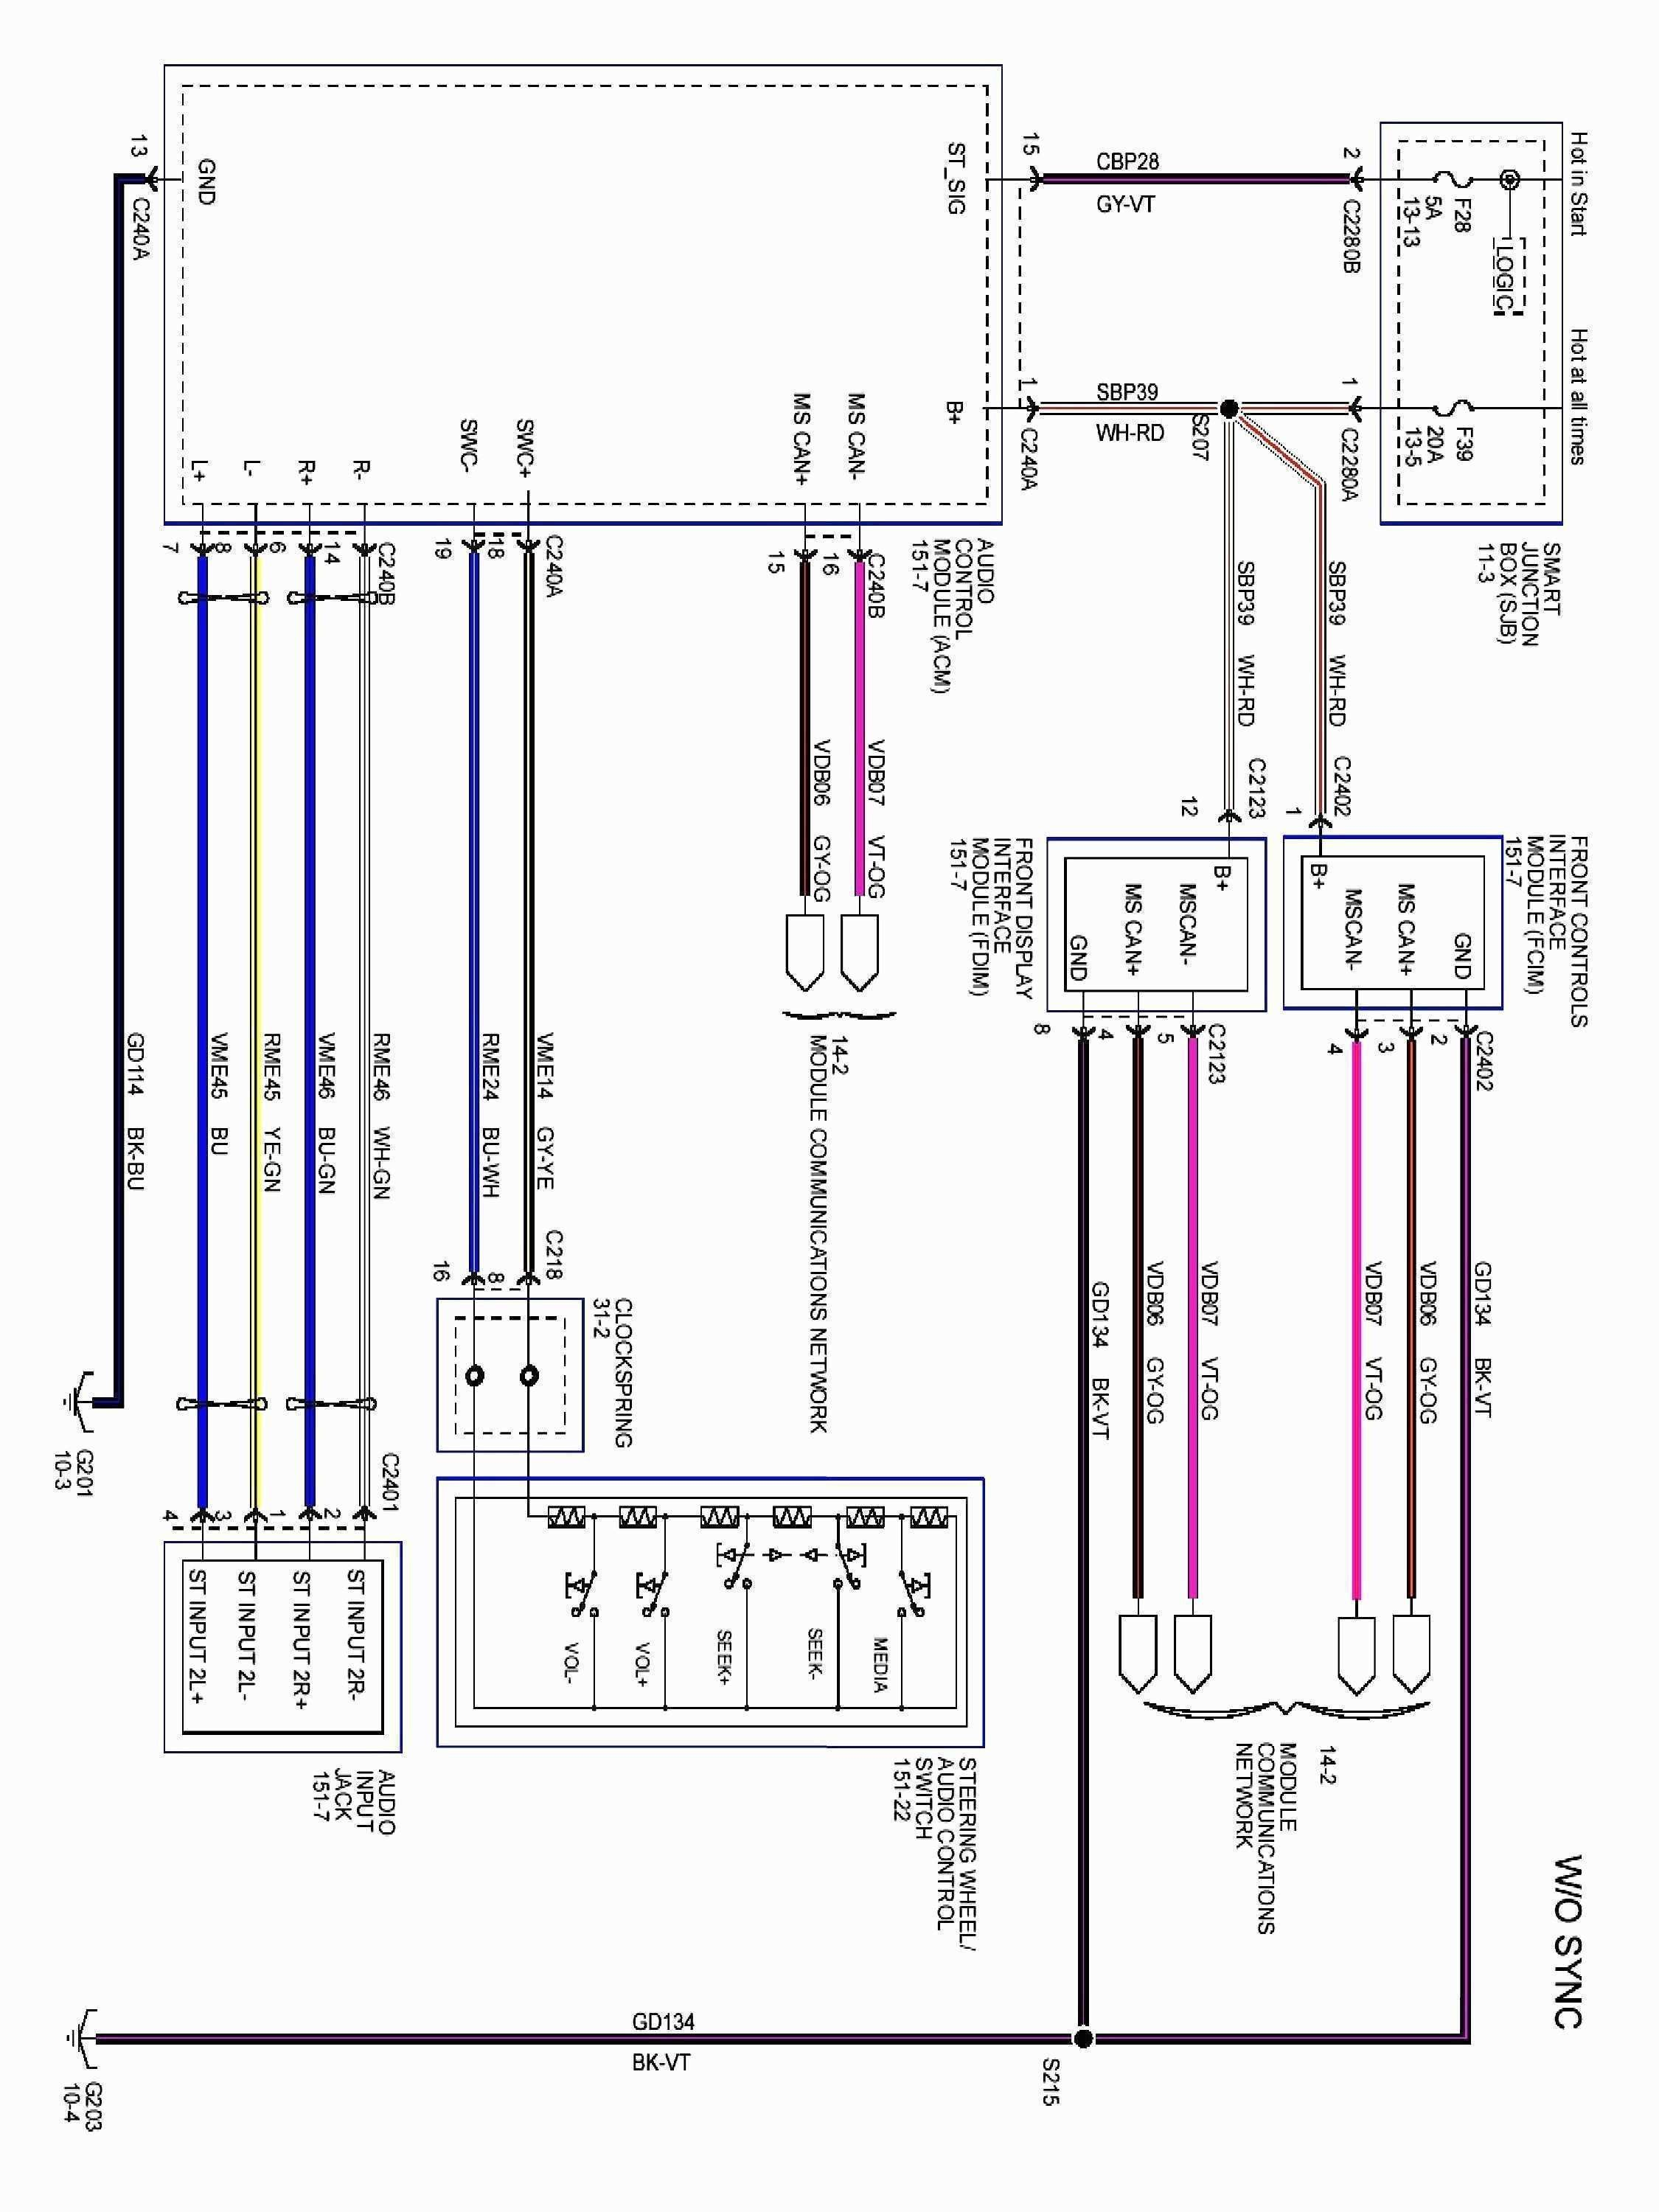 New Wiring Diagram Definition Diagram Wiringdiagram Diagramming Diagramm Visuals Visualisation Graphic Electrical Wiring Diagram Diagram Circuit Diagram